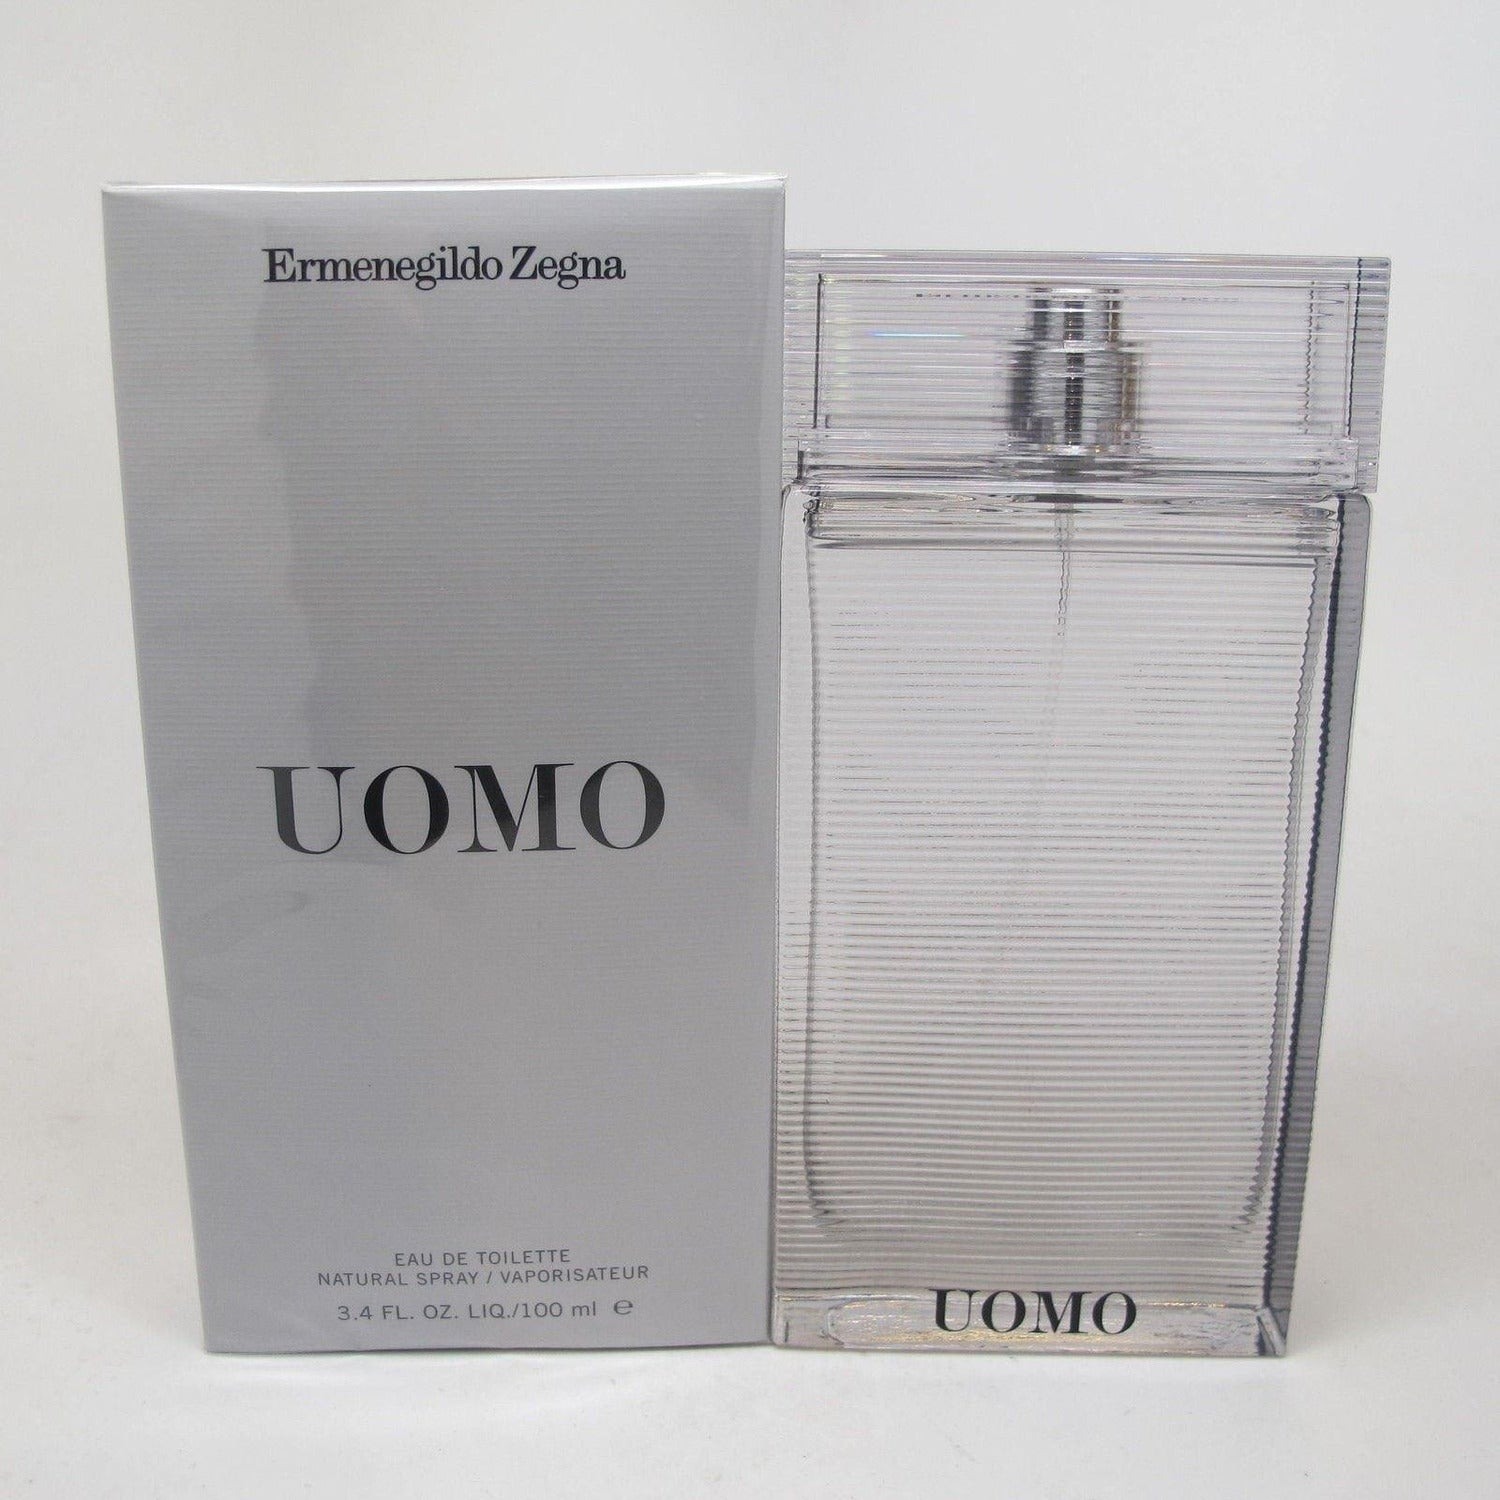 zegna-uomo-ermenegildo-zegna-men-cologne-edt-3-4-oz-3-3-new-in-box